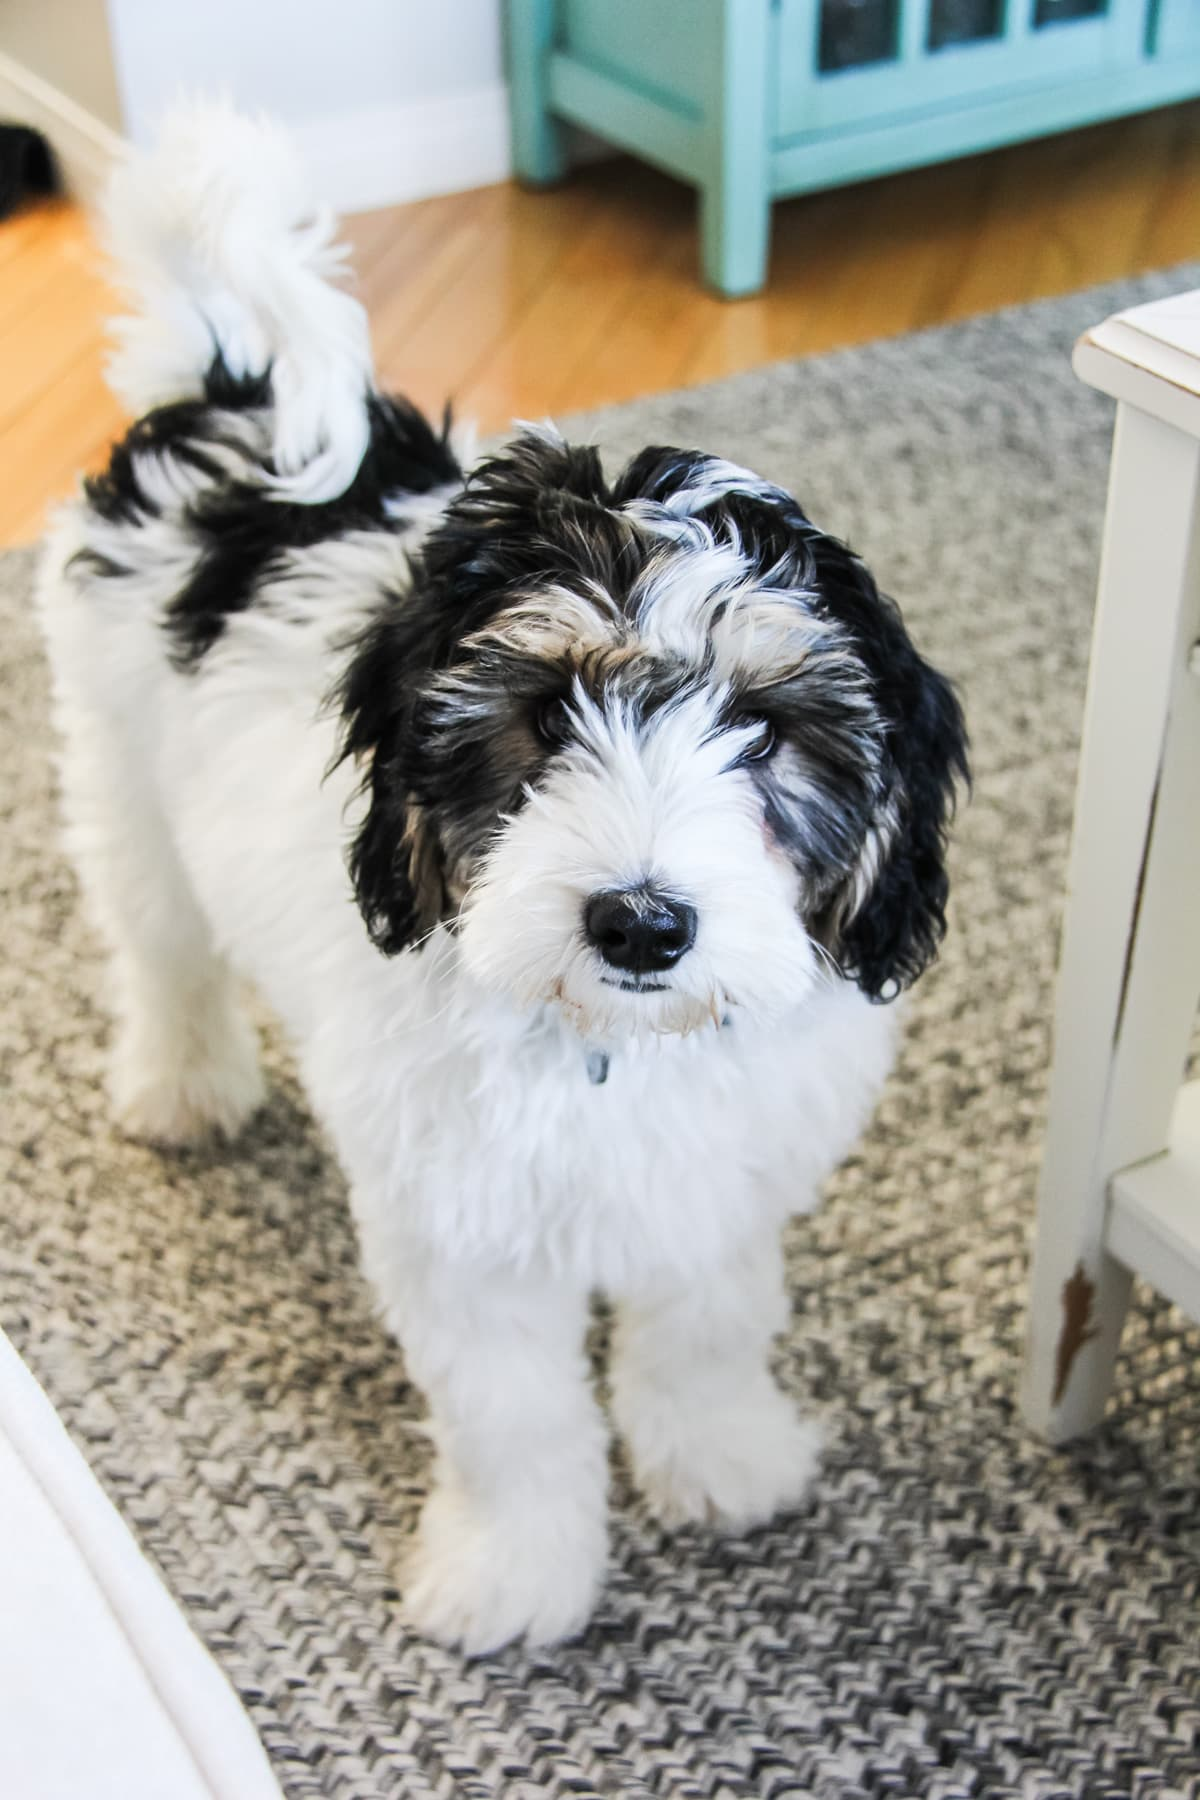 a black and white fluffy puppy